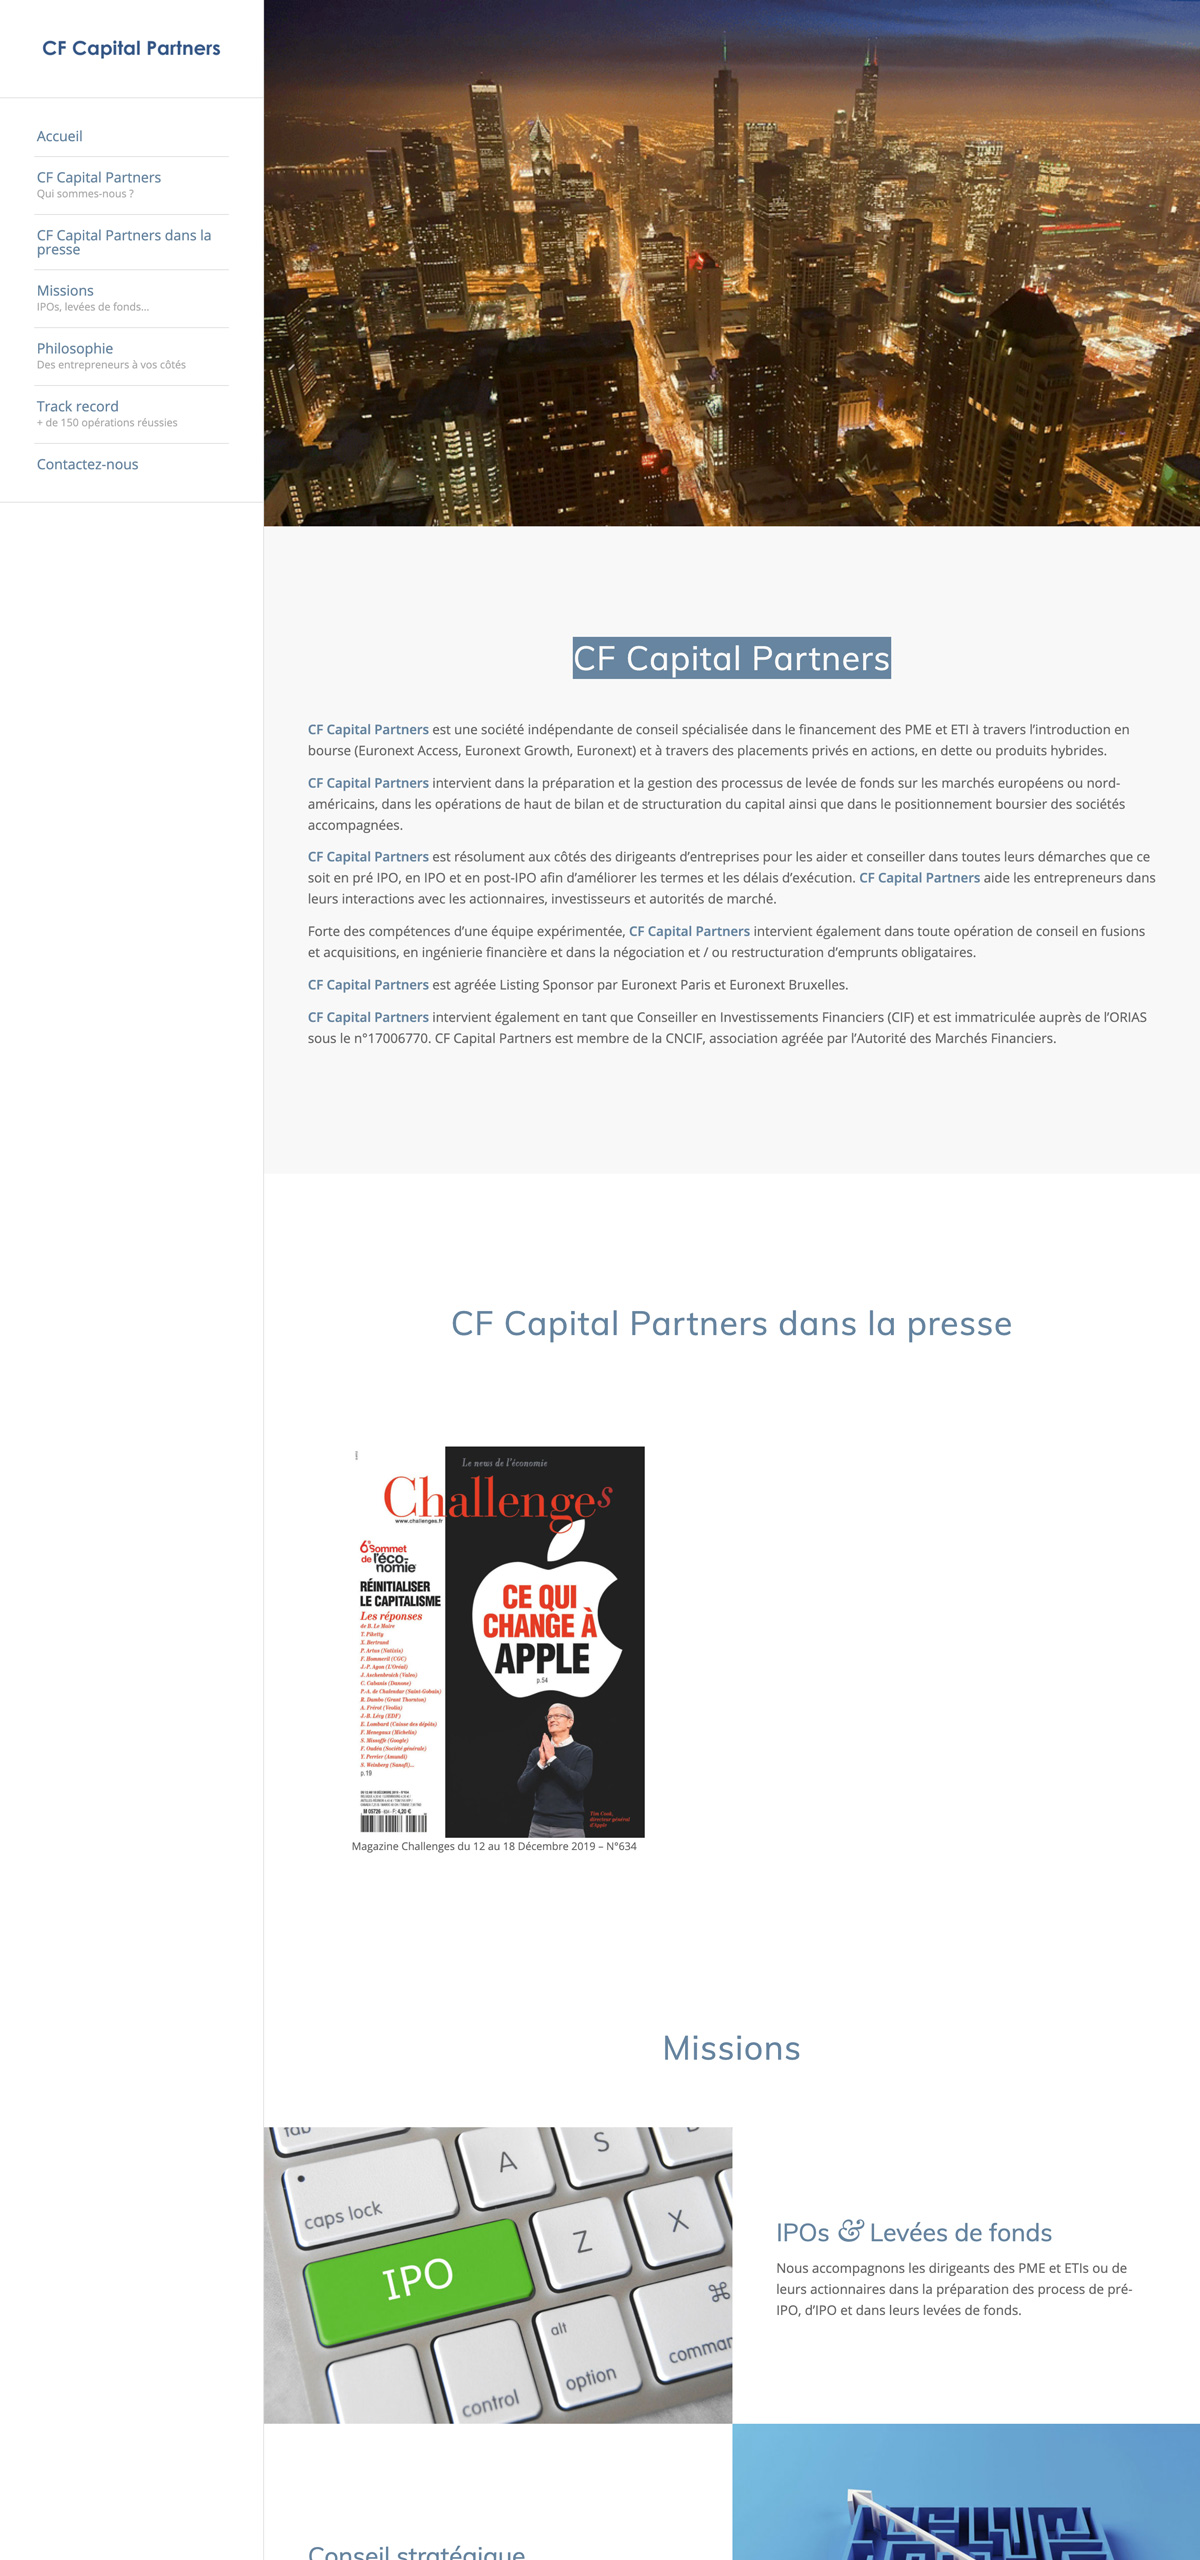 rdsc cf capital partners website screenshot